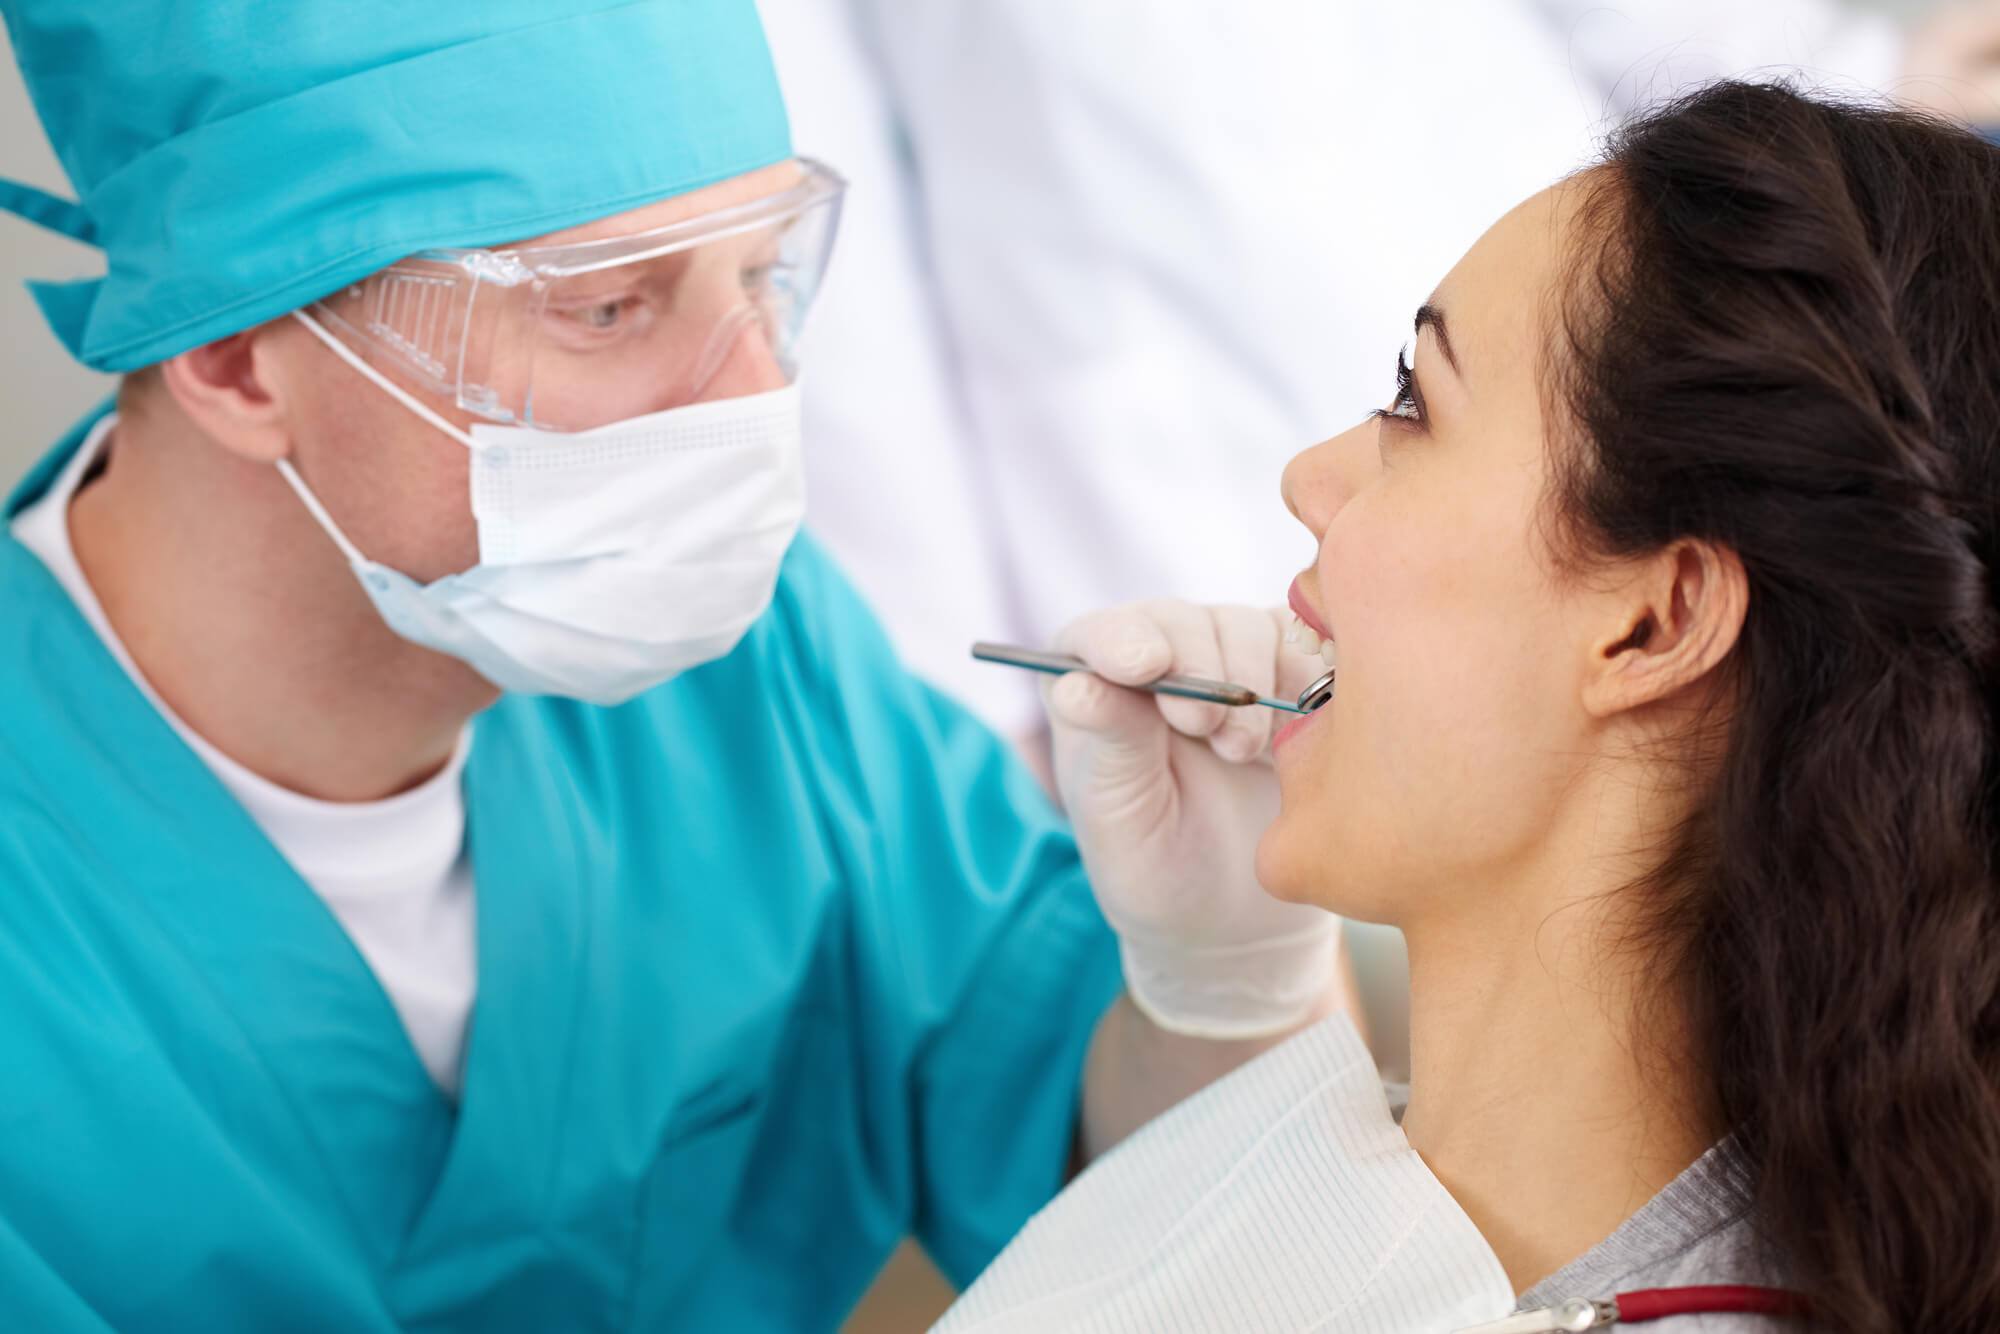 where to get a gentle tooth extraction in west palm beach?